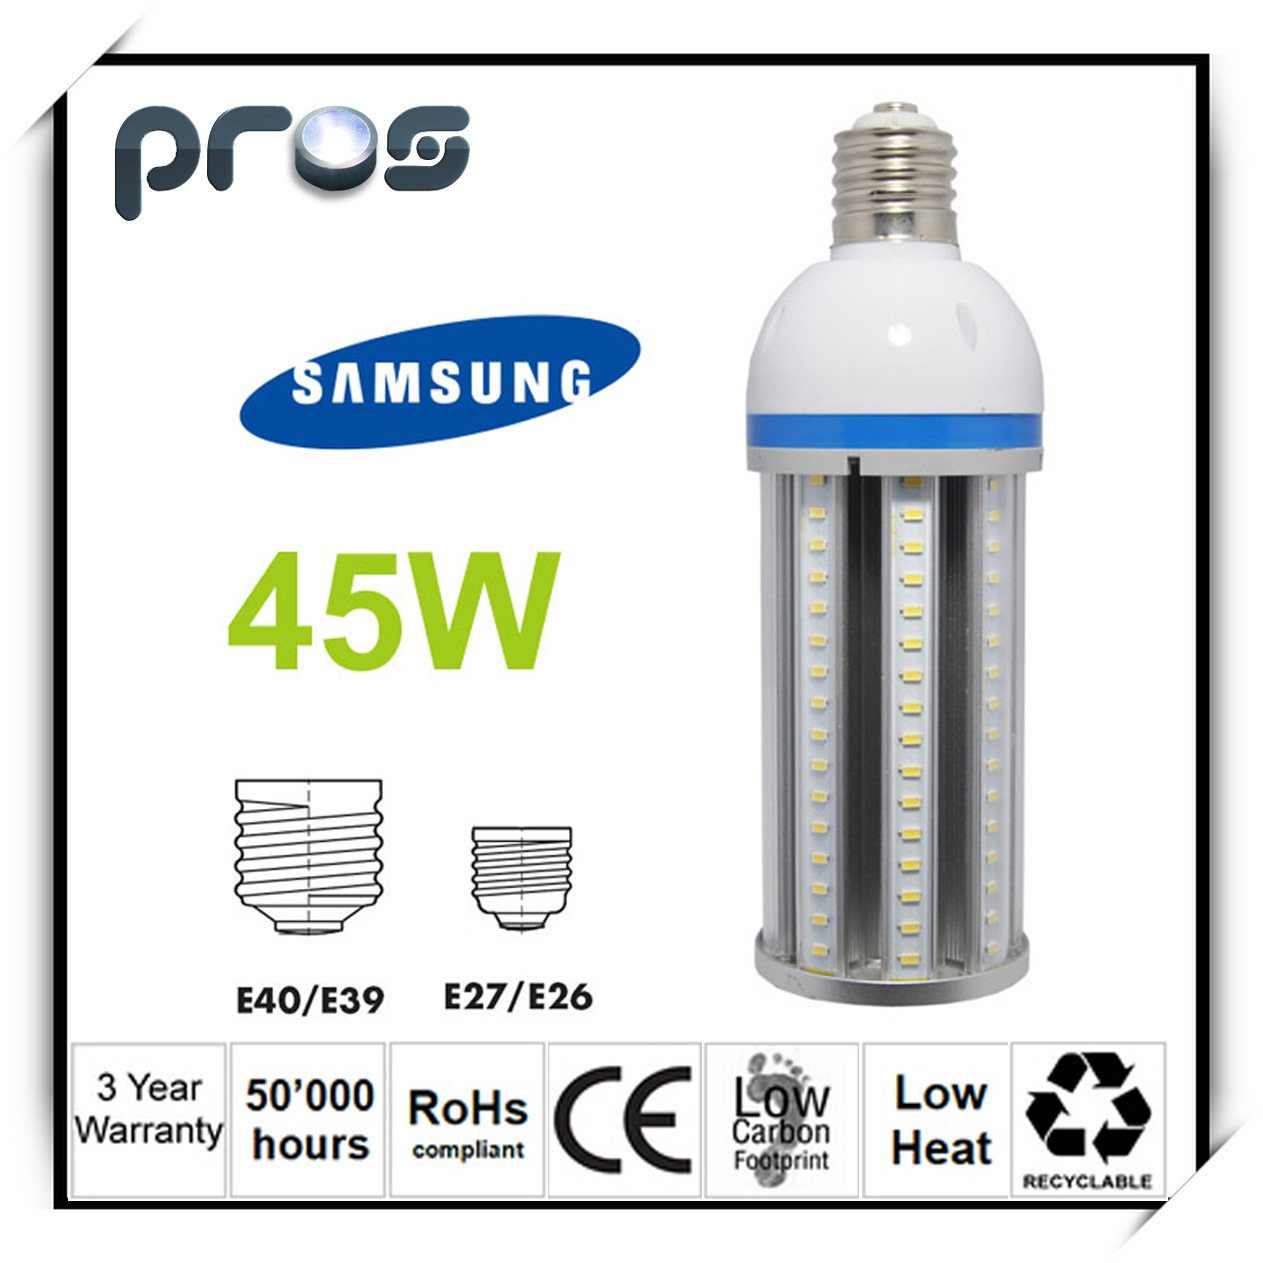 45W Corn Light LED 110lm/W, LED Corn Bulb for Warehouse